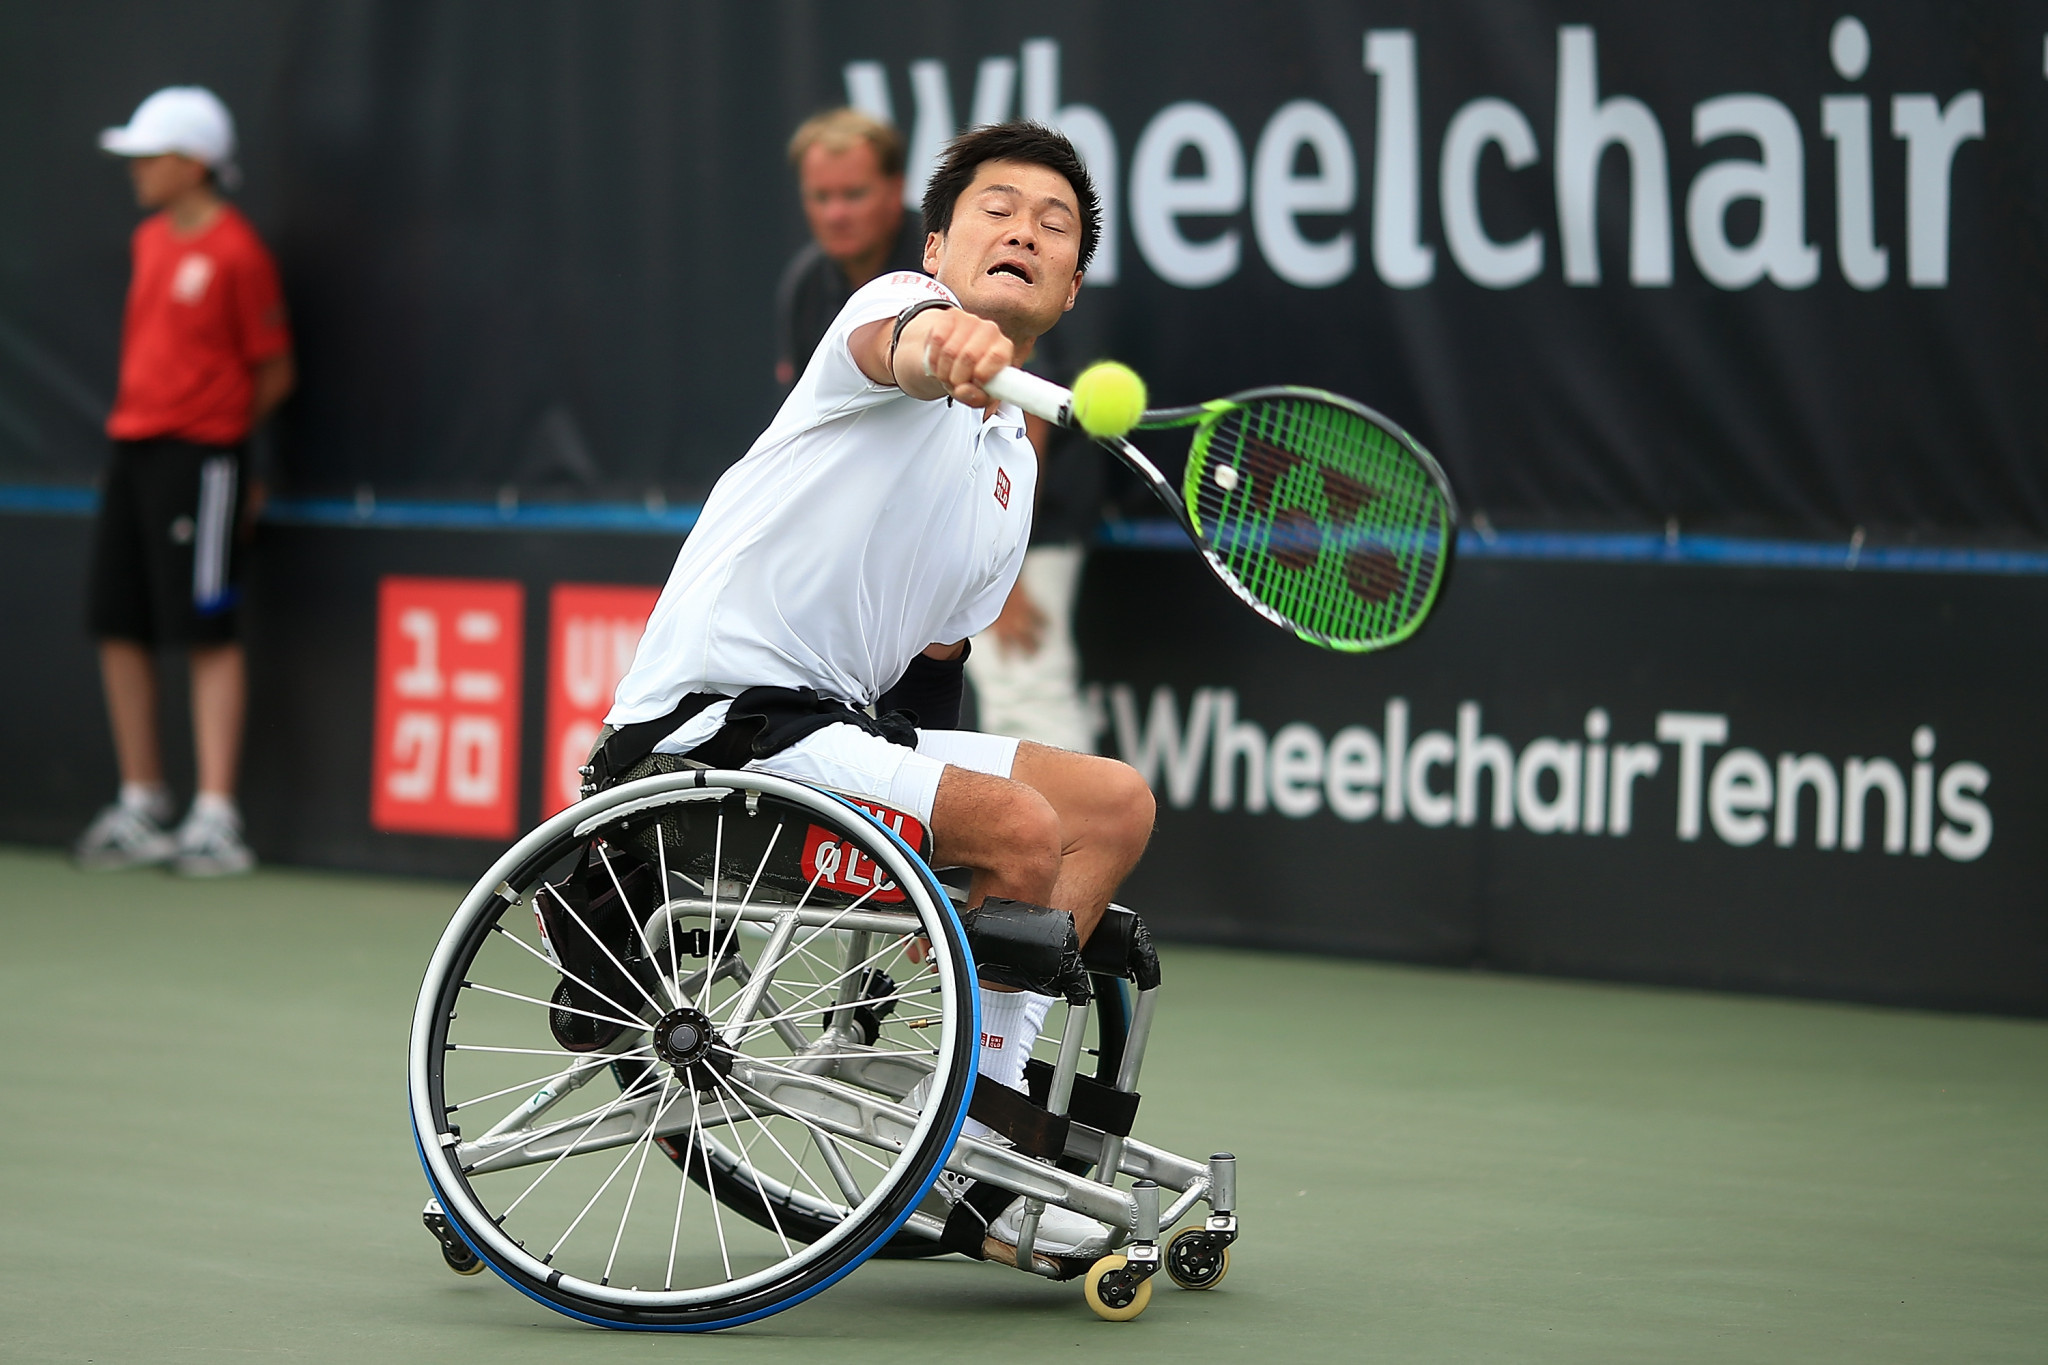 Japan's Shingo Kunieda will be looking to make his mark at the Bendigo Wheelchair Tennis Open this week ©Getty Images